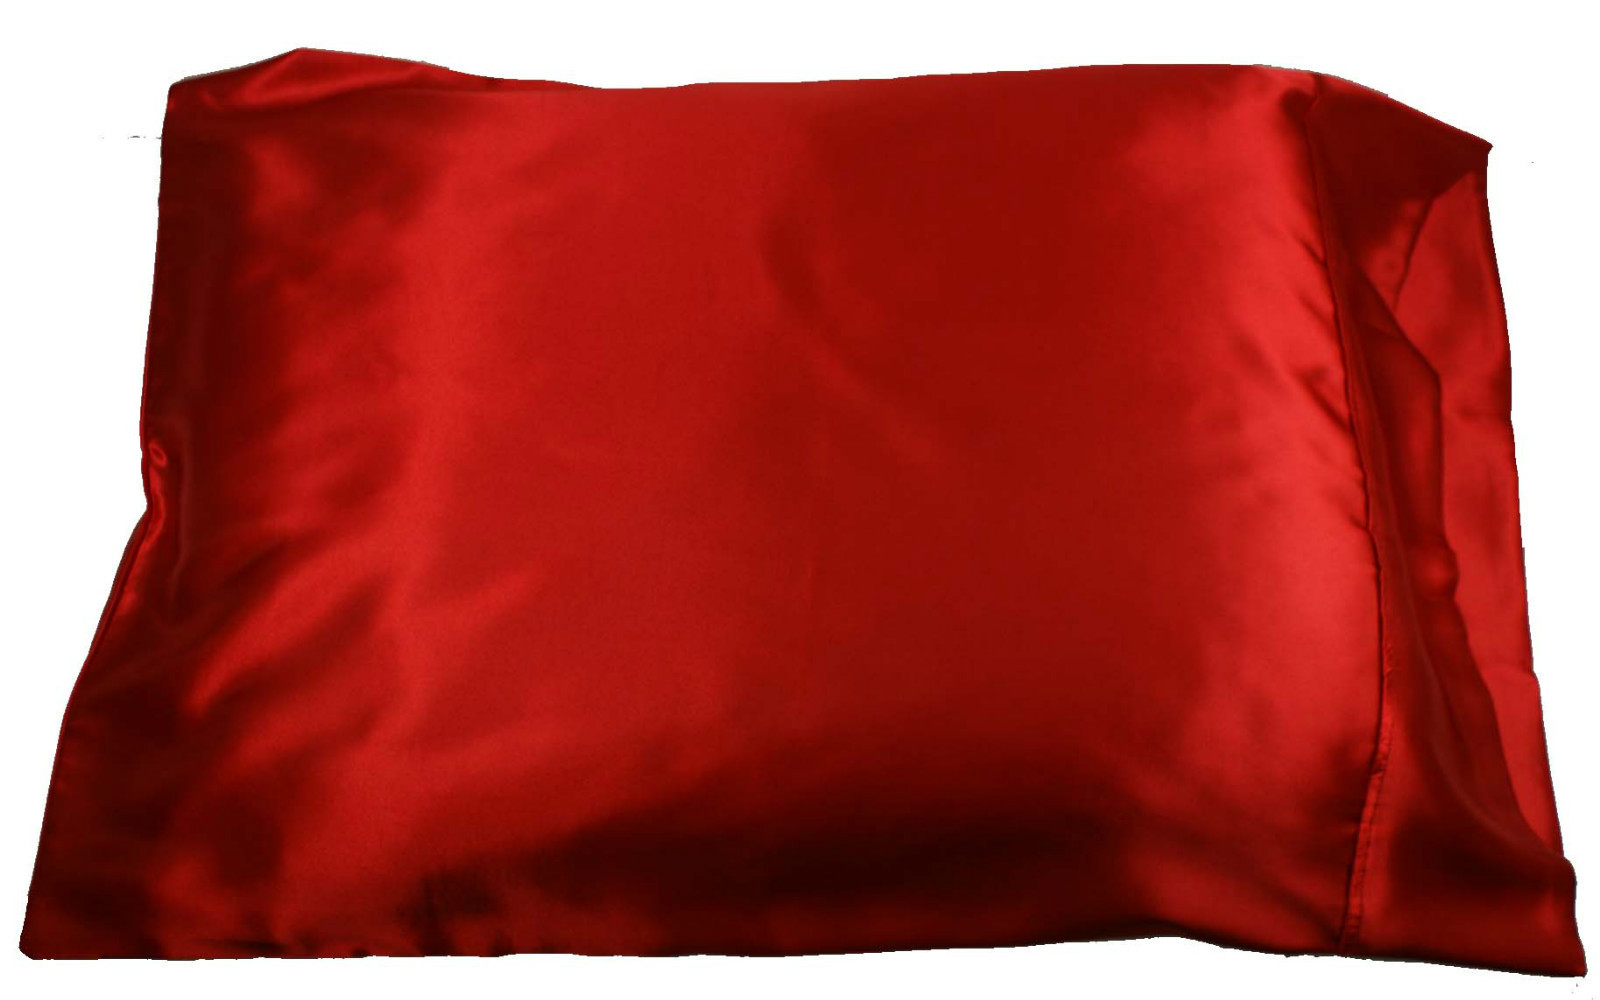 pc new queenstandard size silky satin pillow case multiple colors  - pc new queenstandard size silky satin pillow case multiple colors